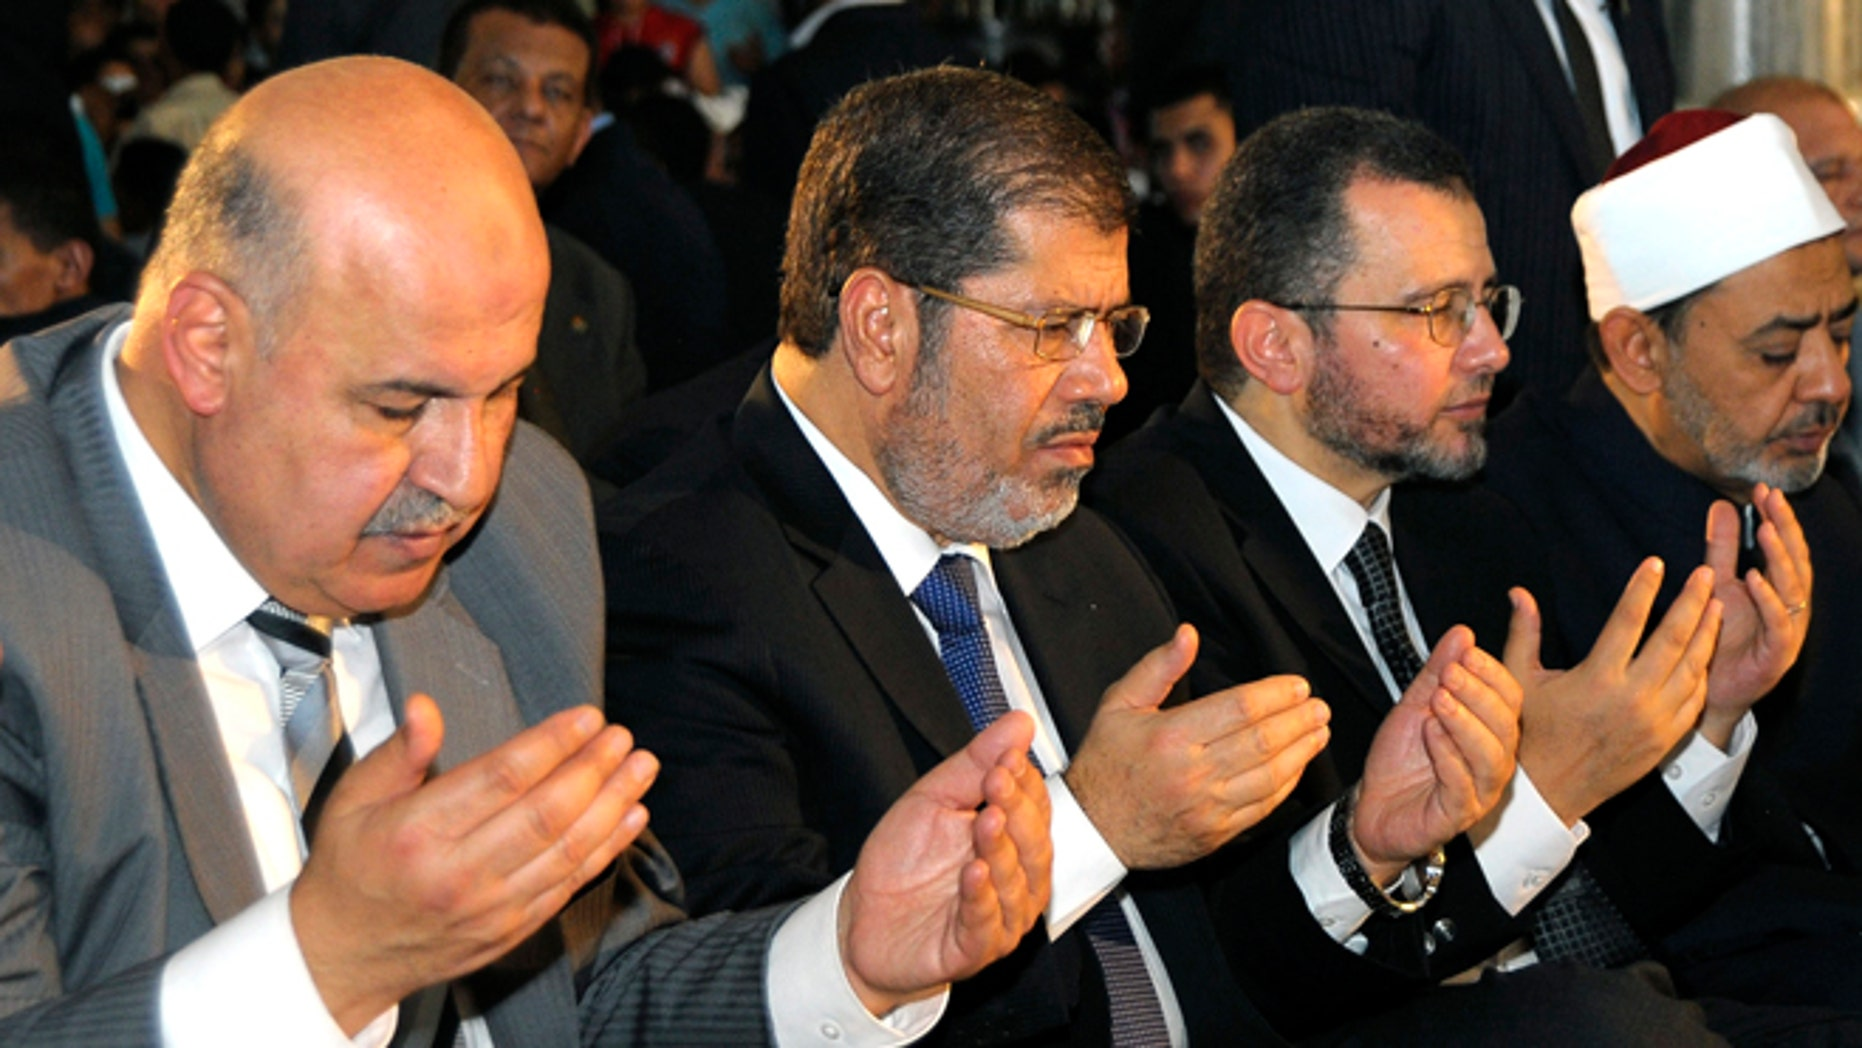 Aug. 19, 2012: Egyptian Vice President, Mahmoud Mekki, left, President Mohammed Morsi, second left, Prime Minister Hesham Kandil, third left, and the Grand Sheik of Al-Azhar, Ahmed el-Tayeb, right, attend Eid al-Fitr prayers in Amr Ibn Al-As mosque to mark the start of a three-day Muslim holiday that marks the end of the Muslim holy month of Ramadan.